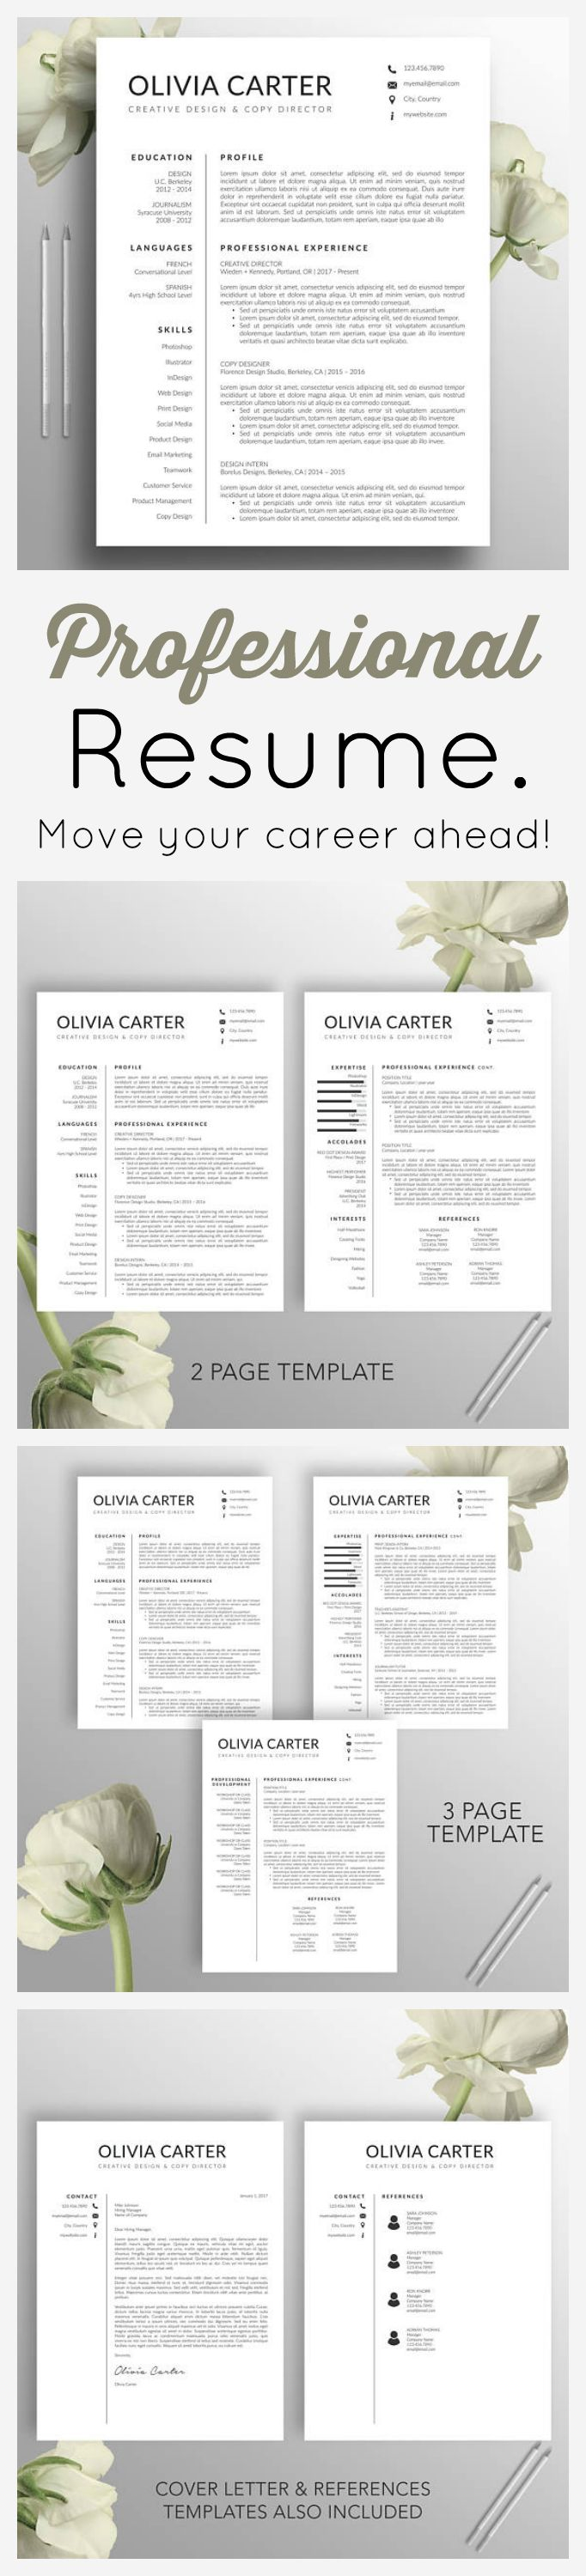 THIS resume is stylish and professional - perfect for the career minded applicant. Modern Resume #Template, Cover Letter, Word, Mac, US Letter, A4, #CV Template, Creative Resume, Professional #Resume, Instant Download, Olivia #ad